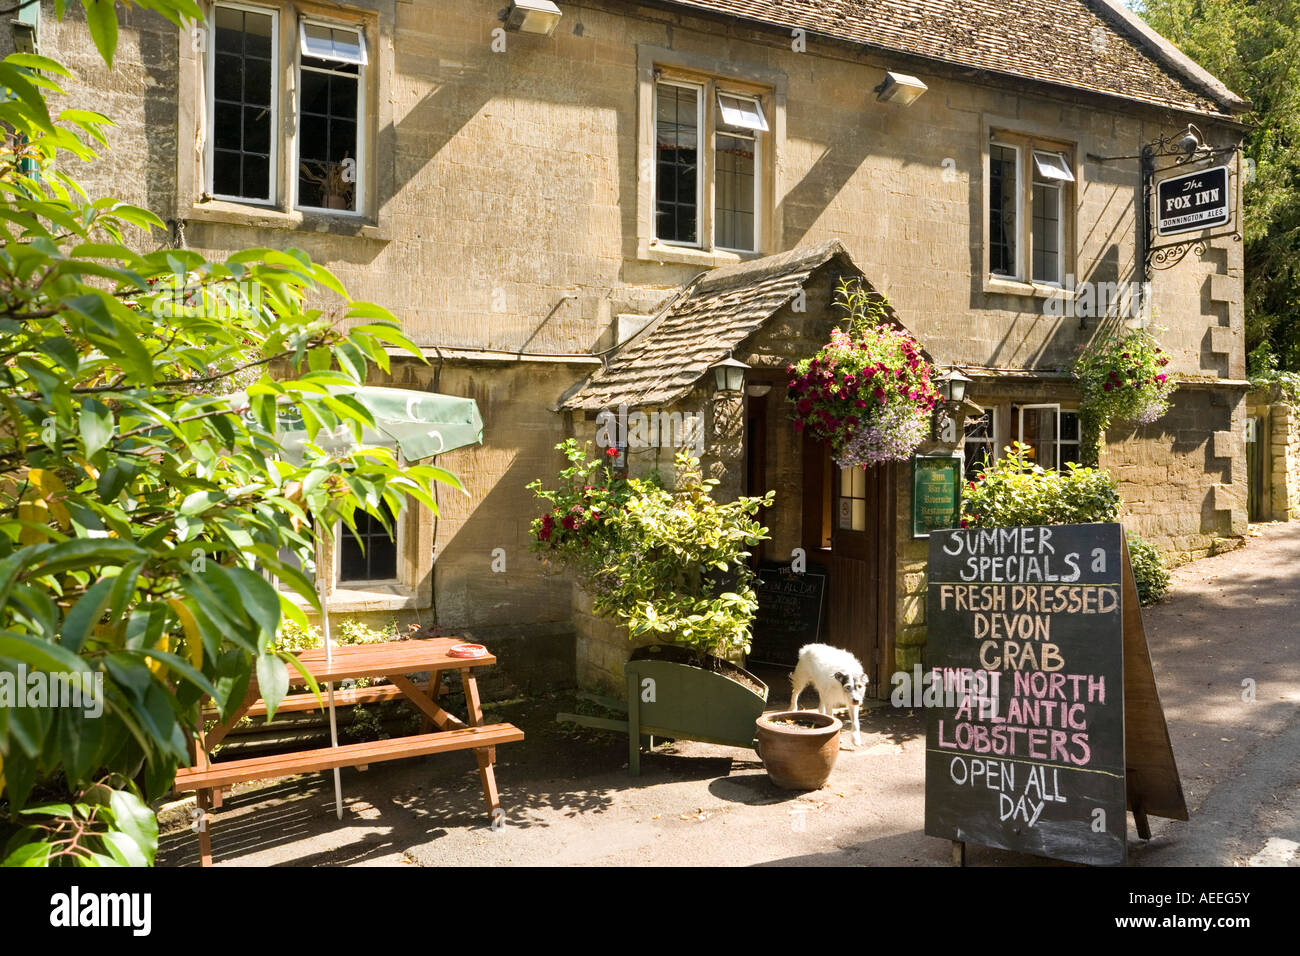 The Fox Inn in the Cotswold village of Great Barrington, Gloucestershire - Stock Image